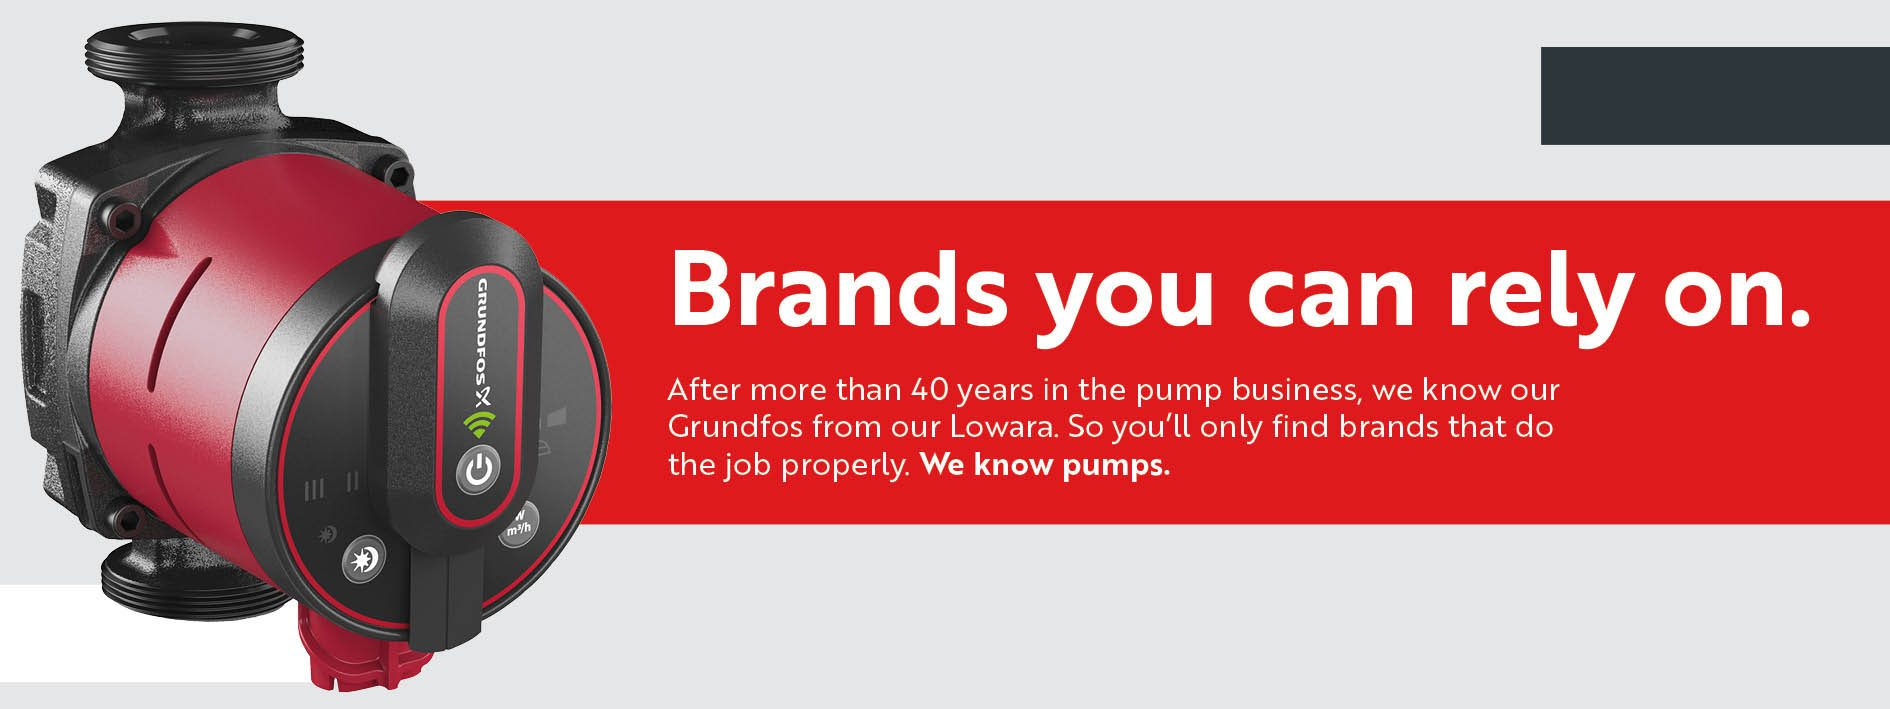 With over 40 years in the pump business, we know our Grundfos from our Lowara